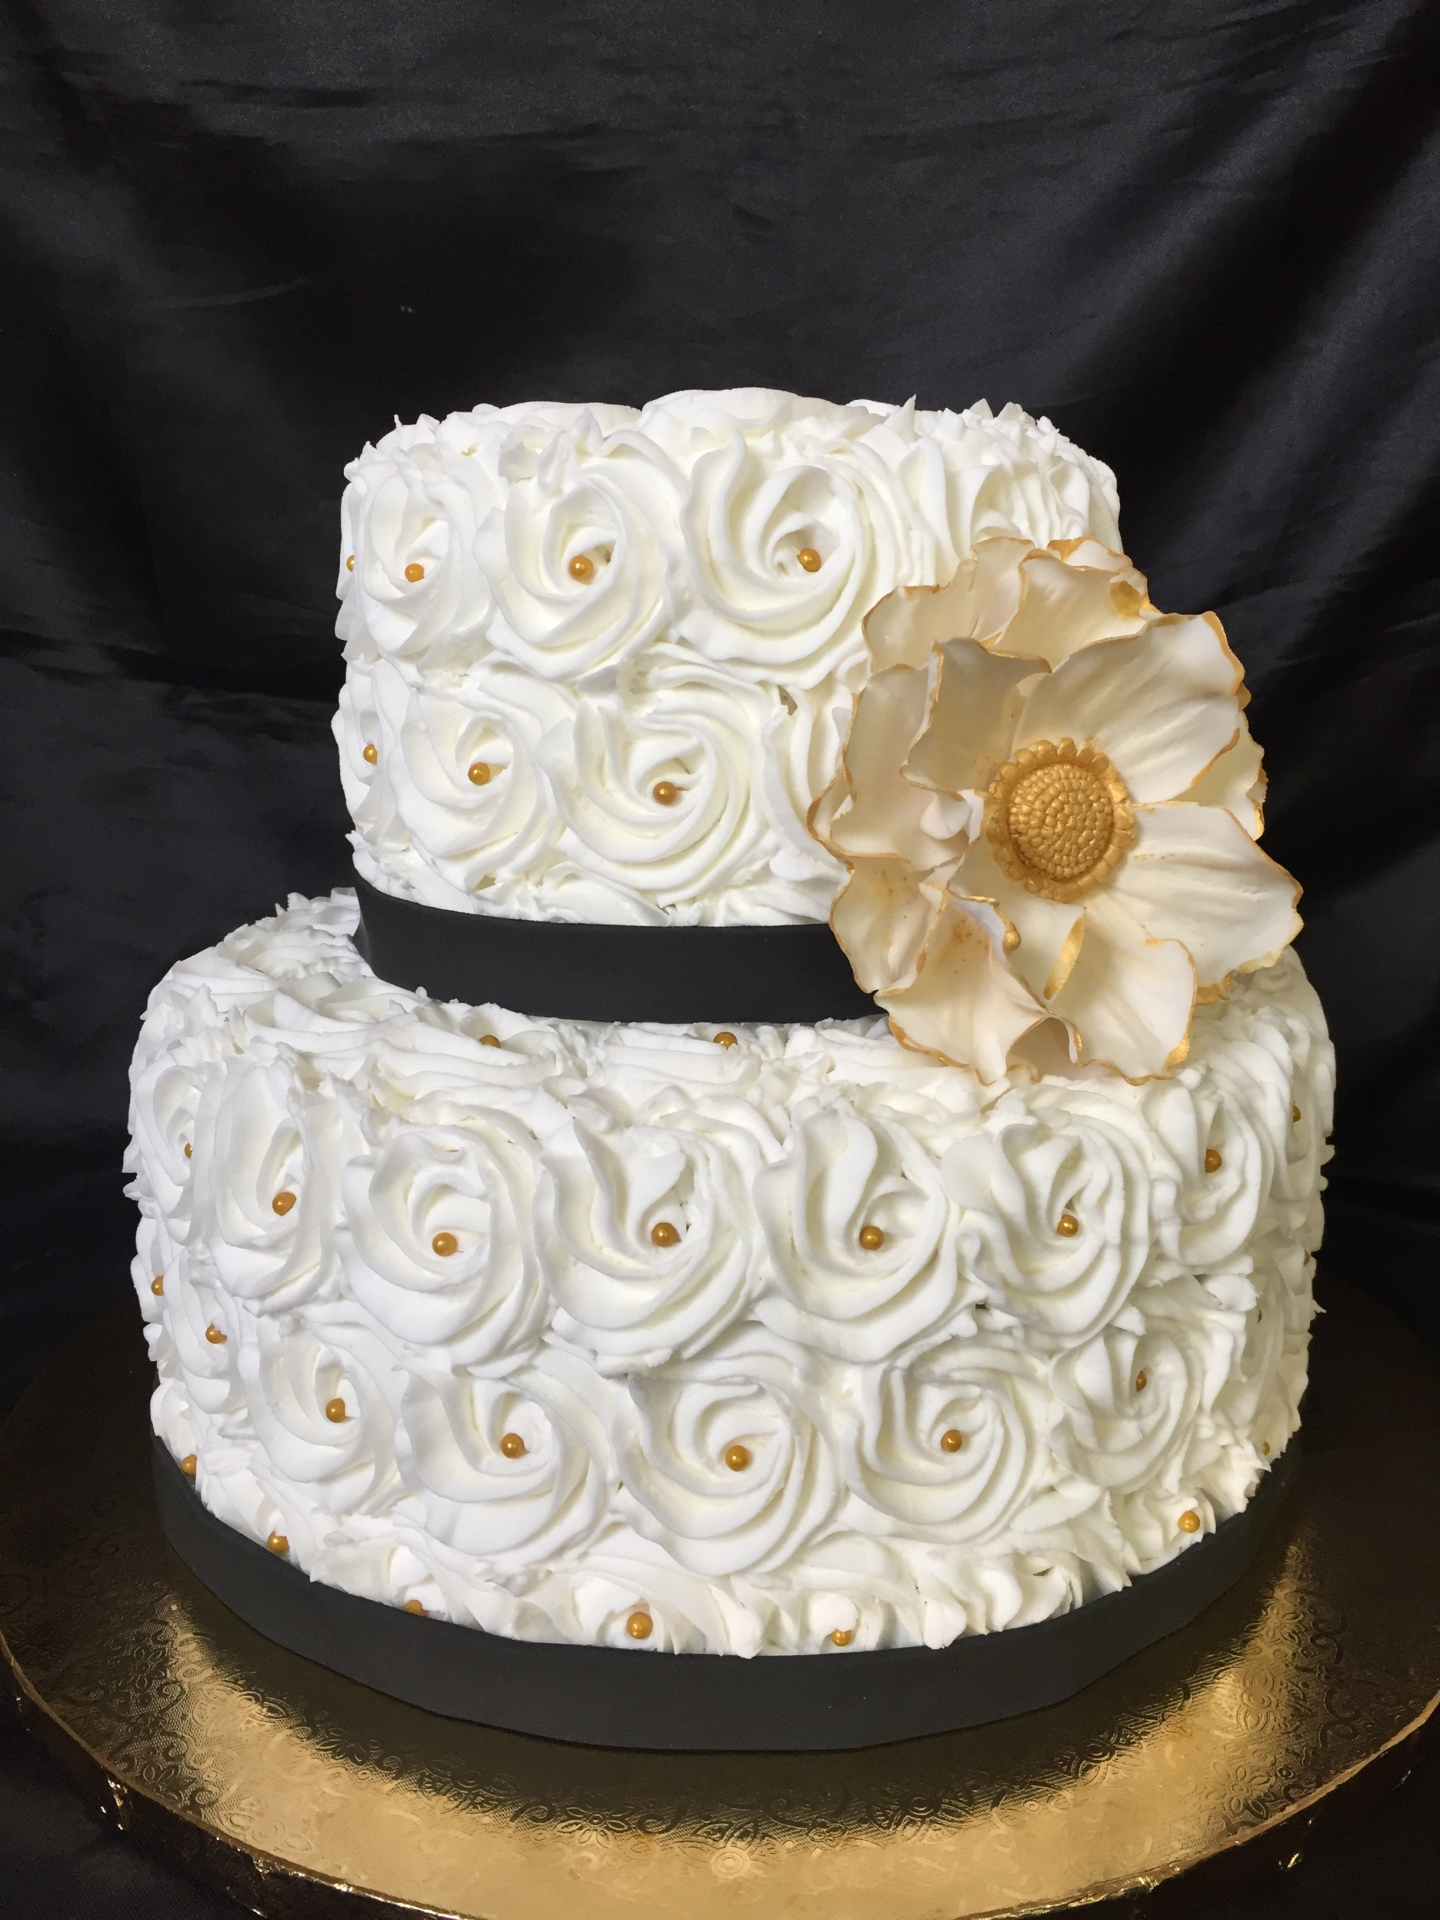 All white rosettes with blakc band